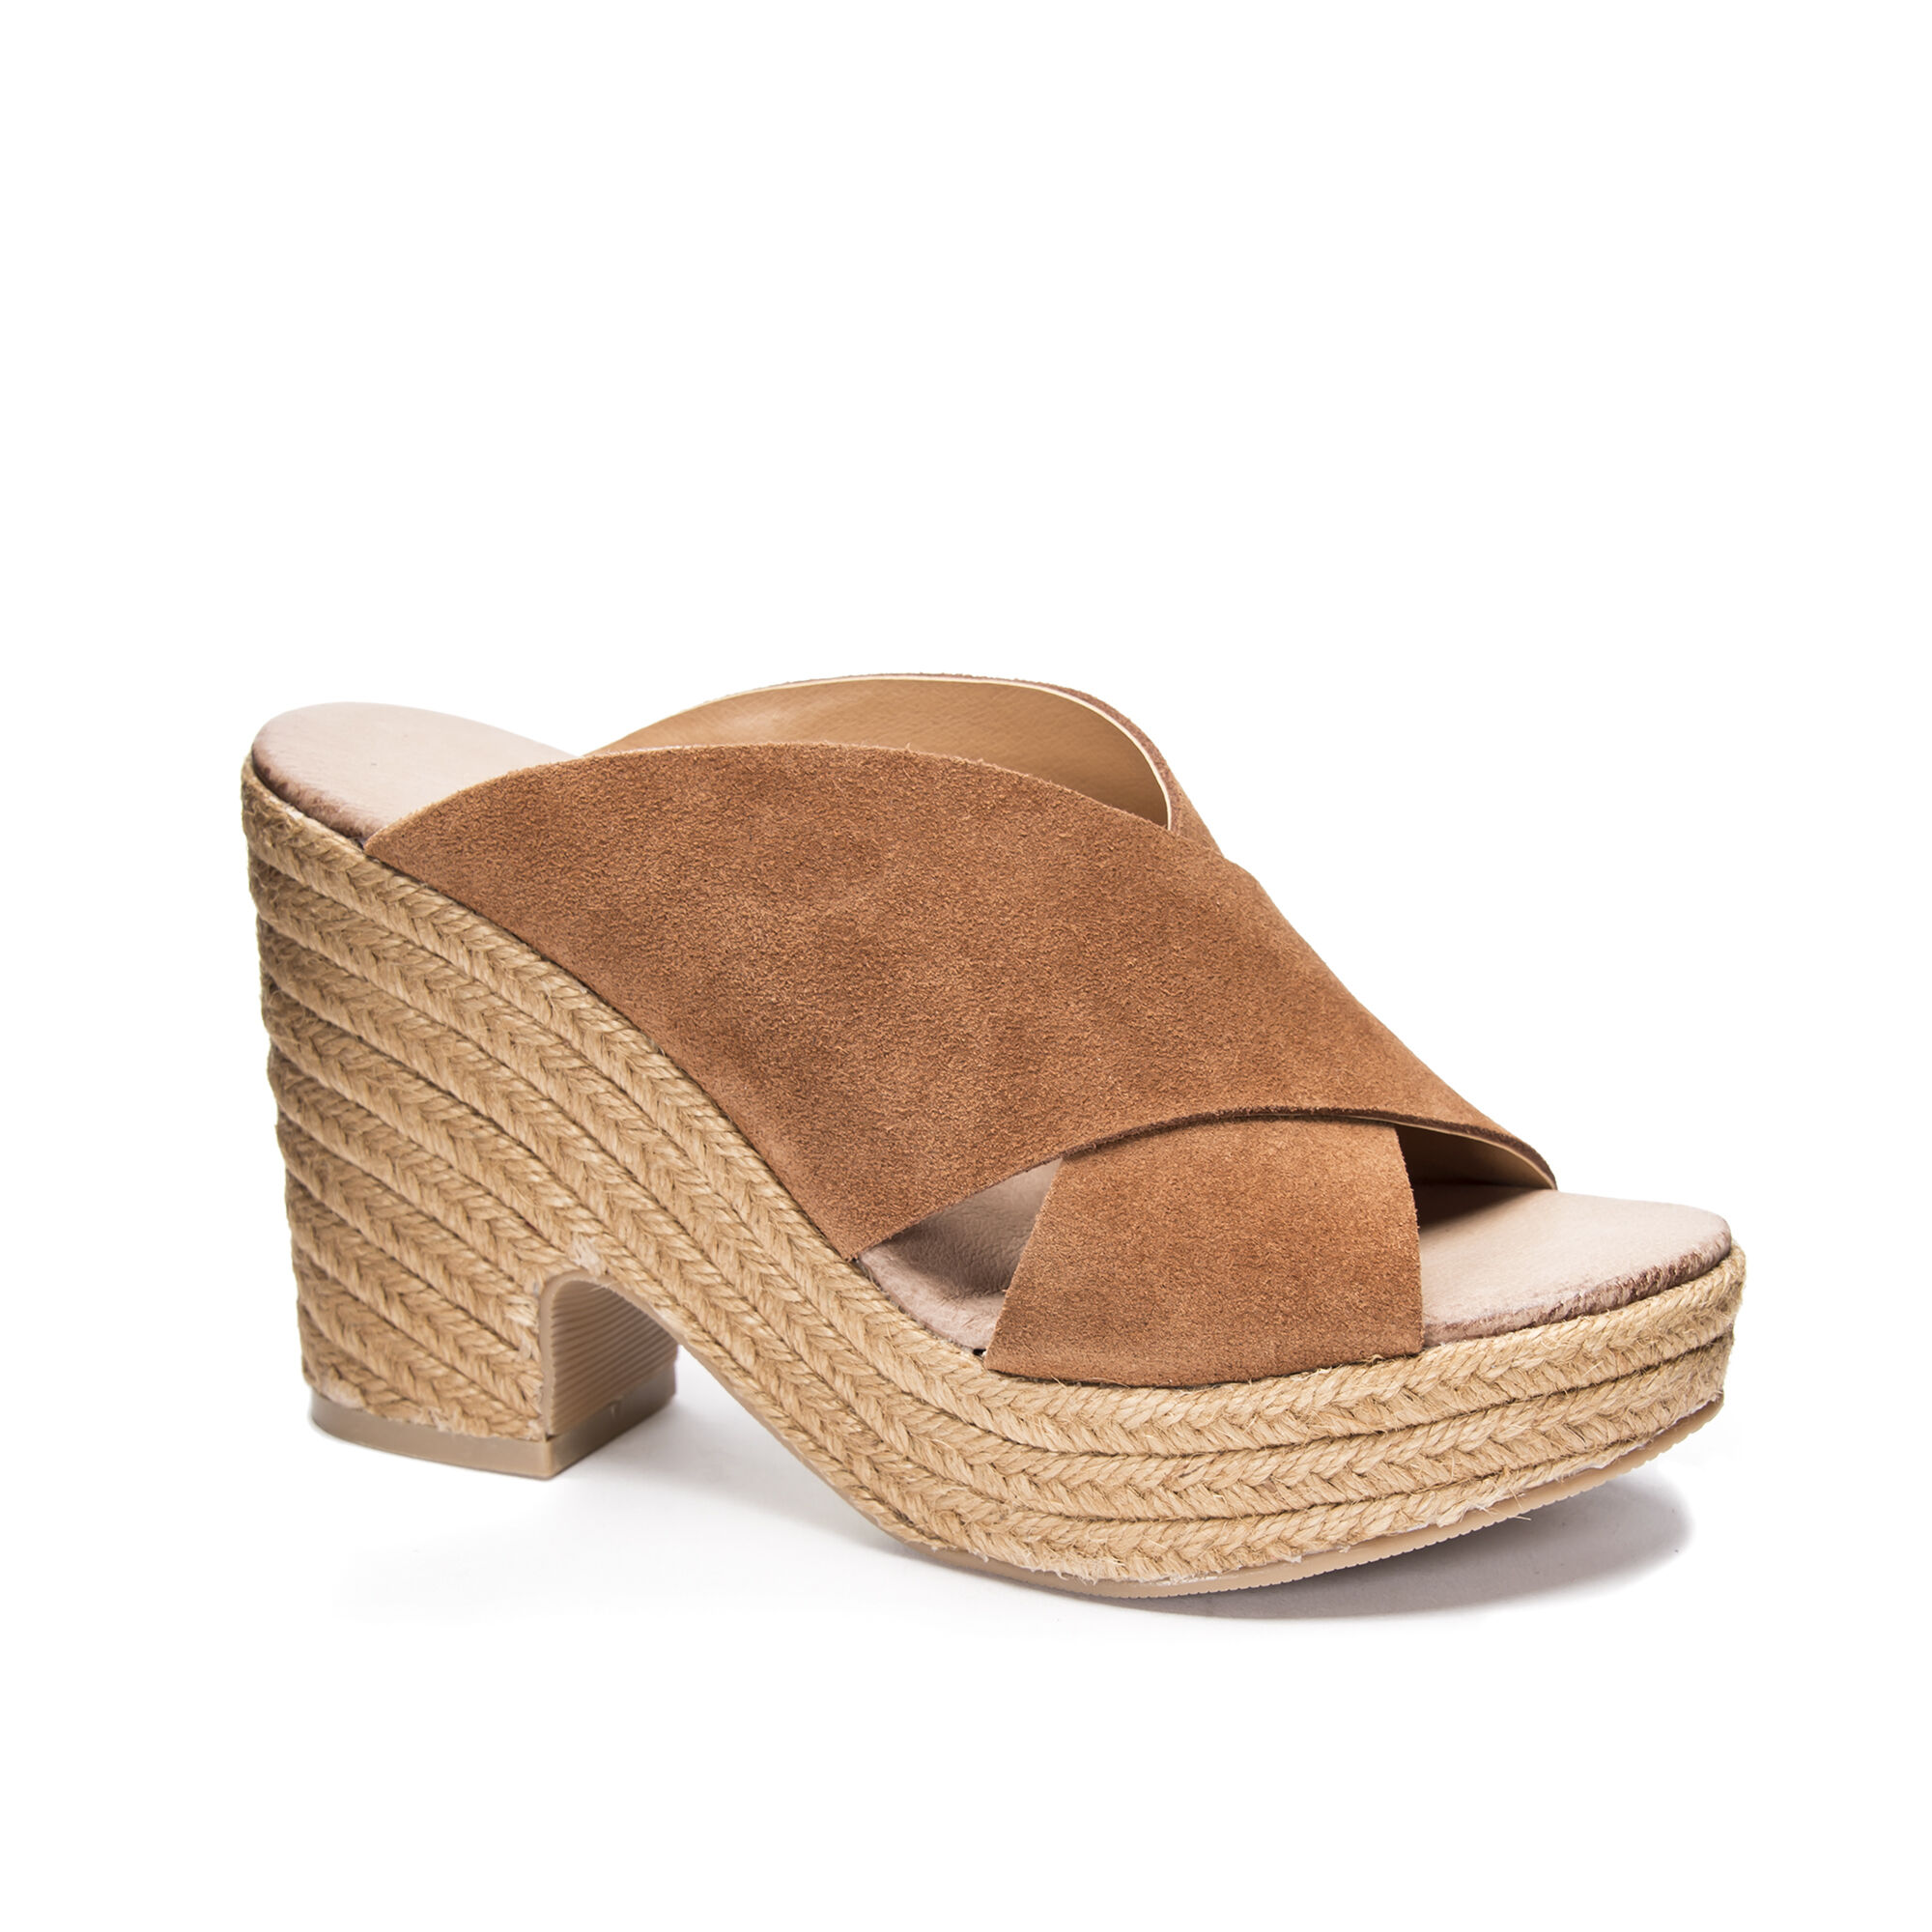 52789f0adfb Chinese Laundry Quay Split Suede Wedge Sandal | Chinese Laundry